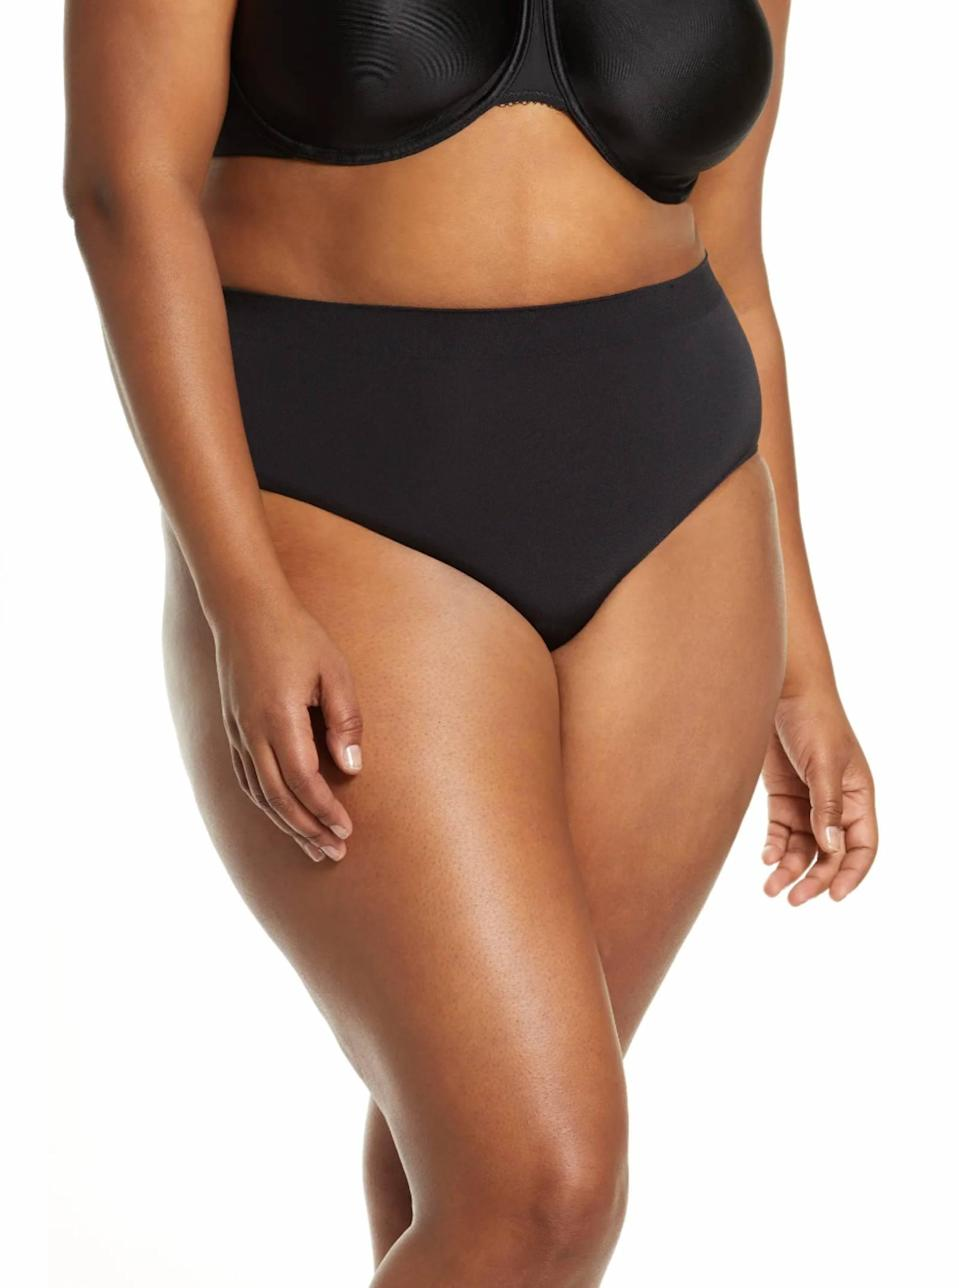 """We love the high waist on these smoothing briefs for added tummy support. It comes in six other neutral colors too—ideal if you want your undies to disappear under clothing. $15, Nordstrom. <a href=""""https://www.nordstrom.com/s/wacoal-b-smooth-briefs-buy-more-save/3085320"""" rel=""""nofollow noopener"""" target=""""_blank"""" data-ylk=""""slk:Get it now!"""" class=""""link rapid-noclick-resp"""">Get it now!</a>"""